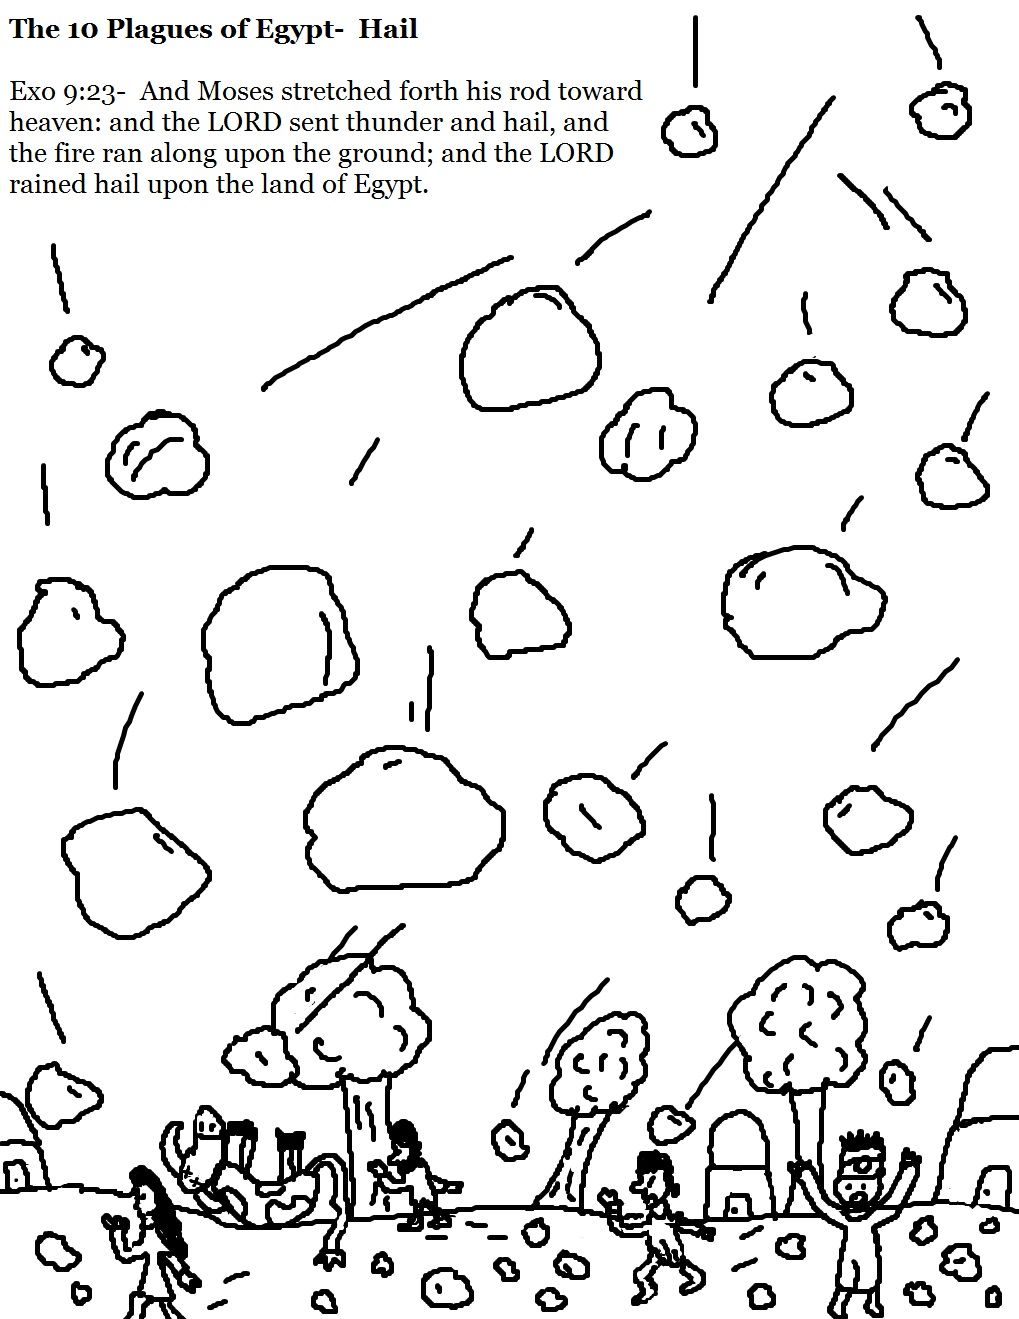 The 10 Plagues of Egypt Hail Coloring Pages.jpg 1,019